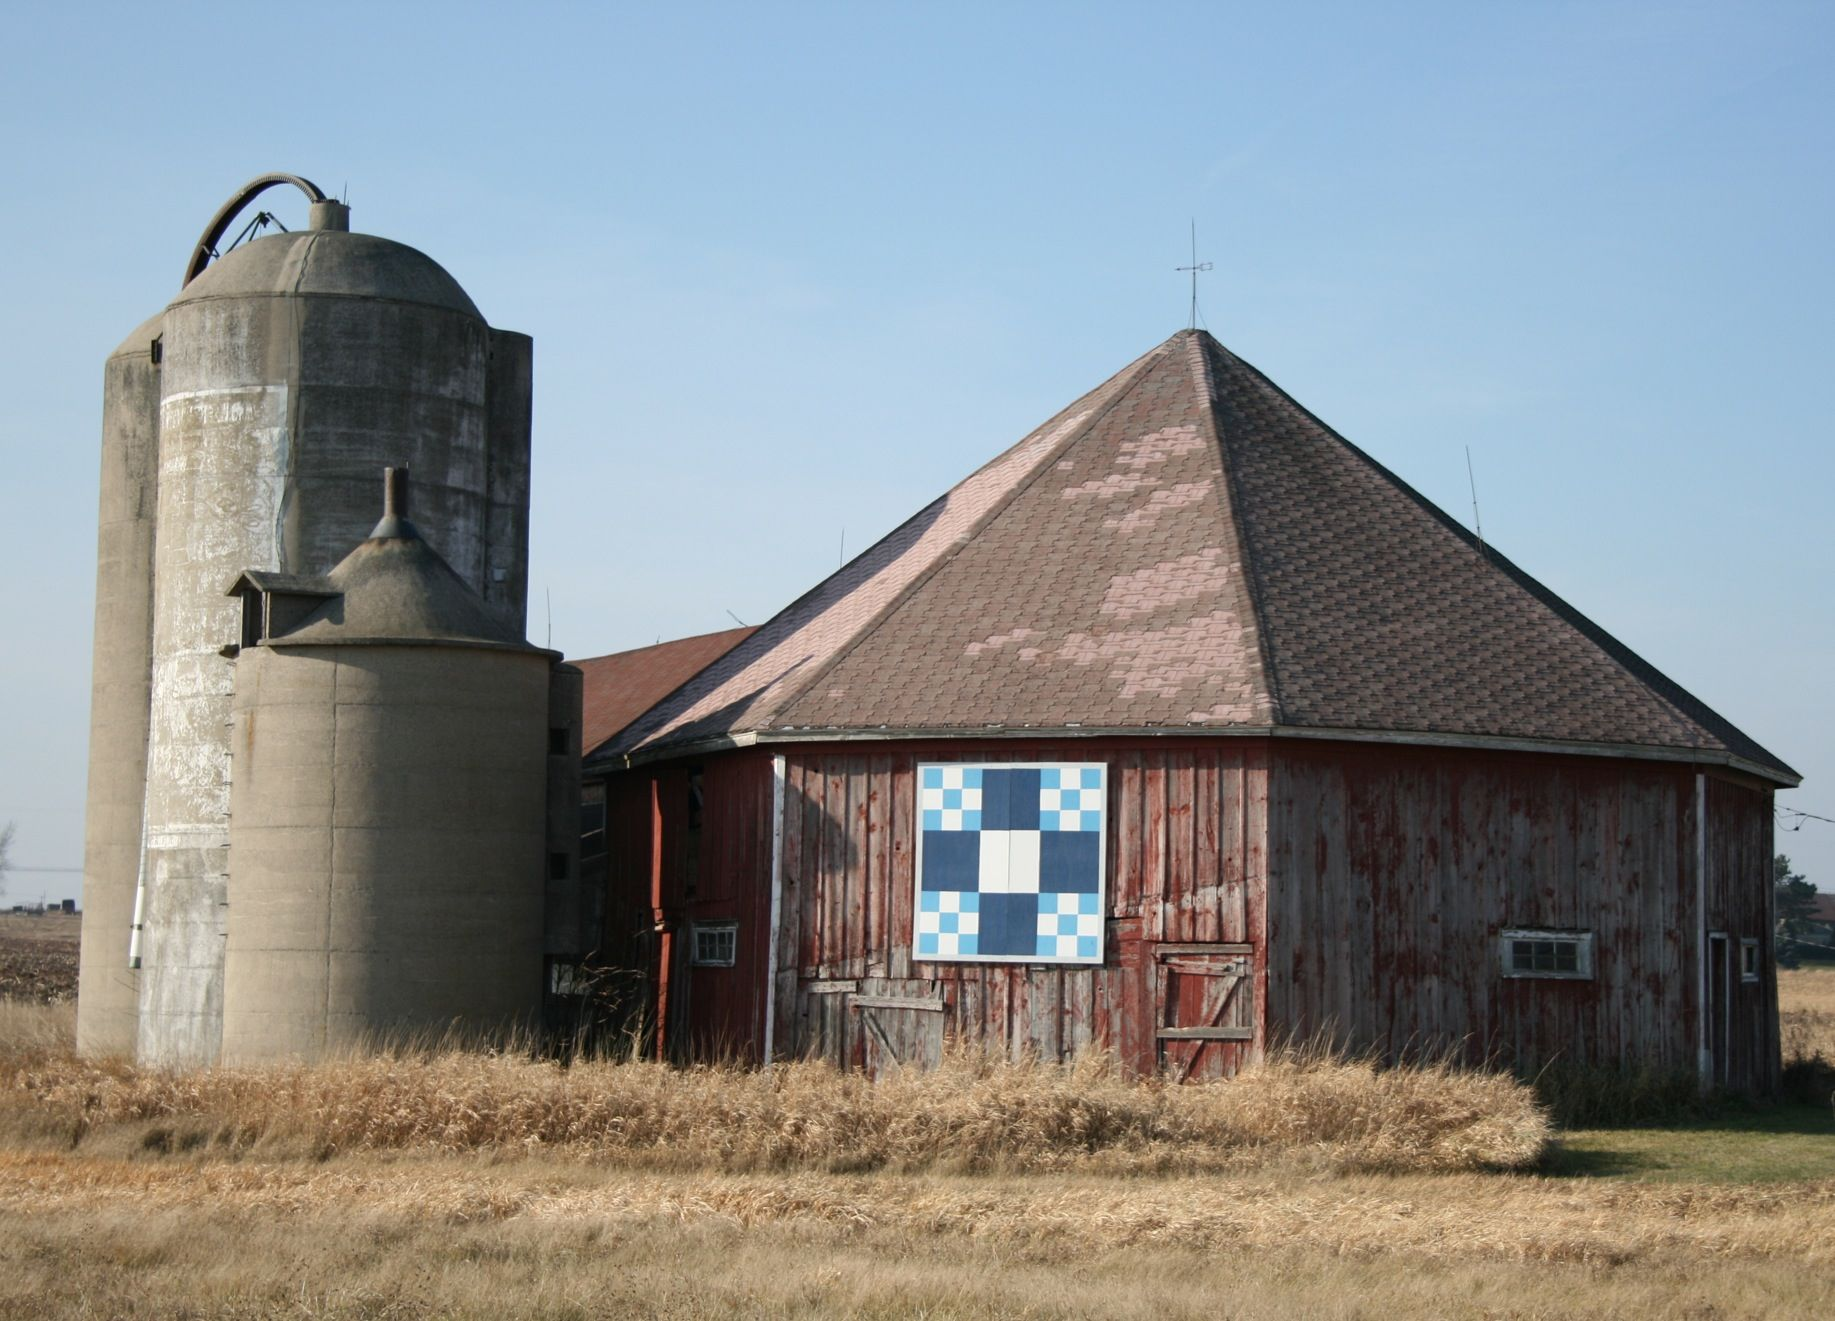 Door County Wi Love This Part Of The Country Painted Barn Quilts Barn Quilts Barn Art